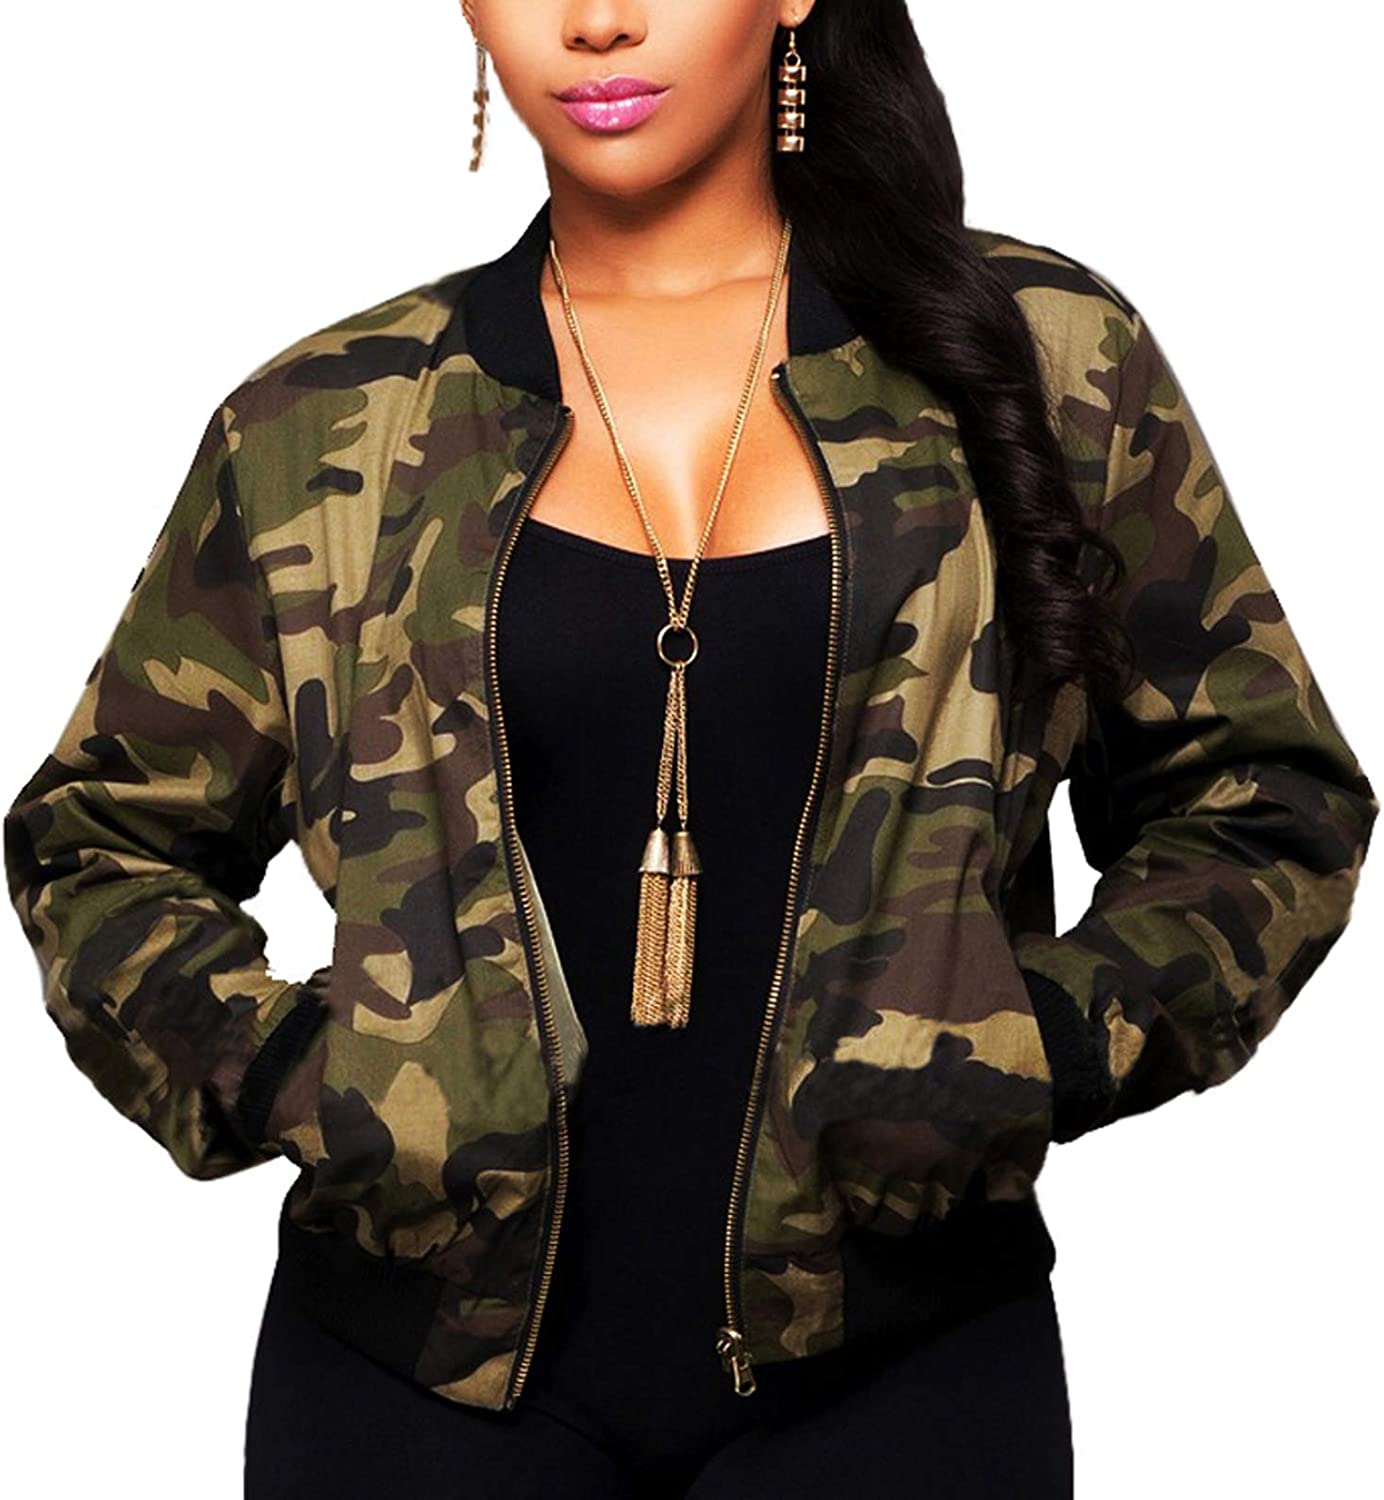 Women's Casual Camouflage Jacket With Pockets Sexy V Neck Long Sleeve Button Down Denim Coat